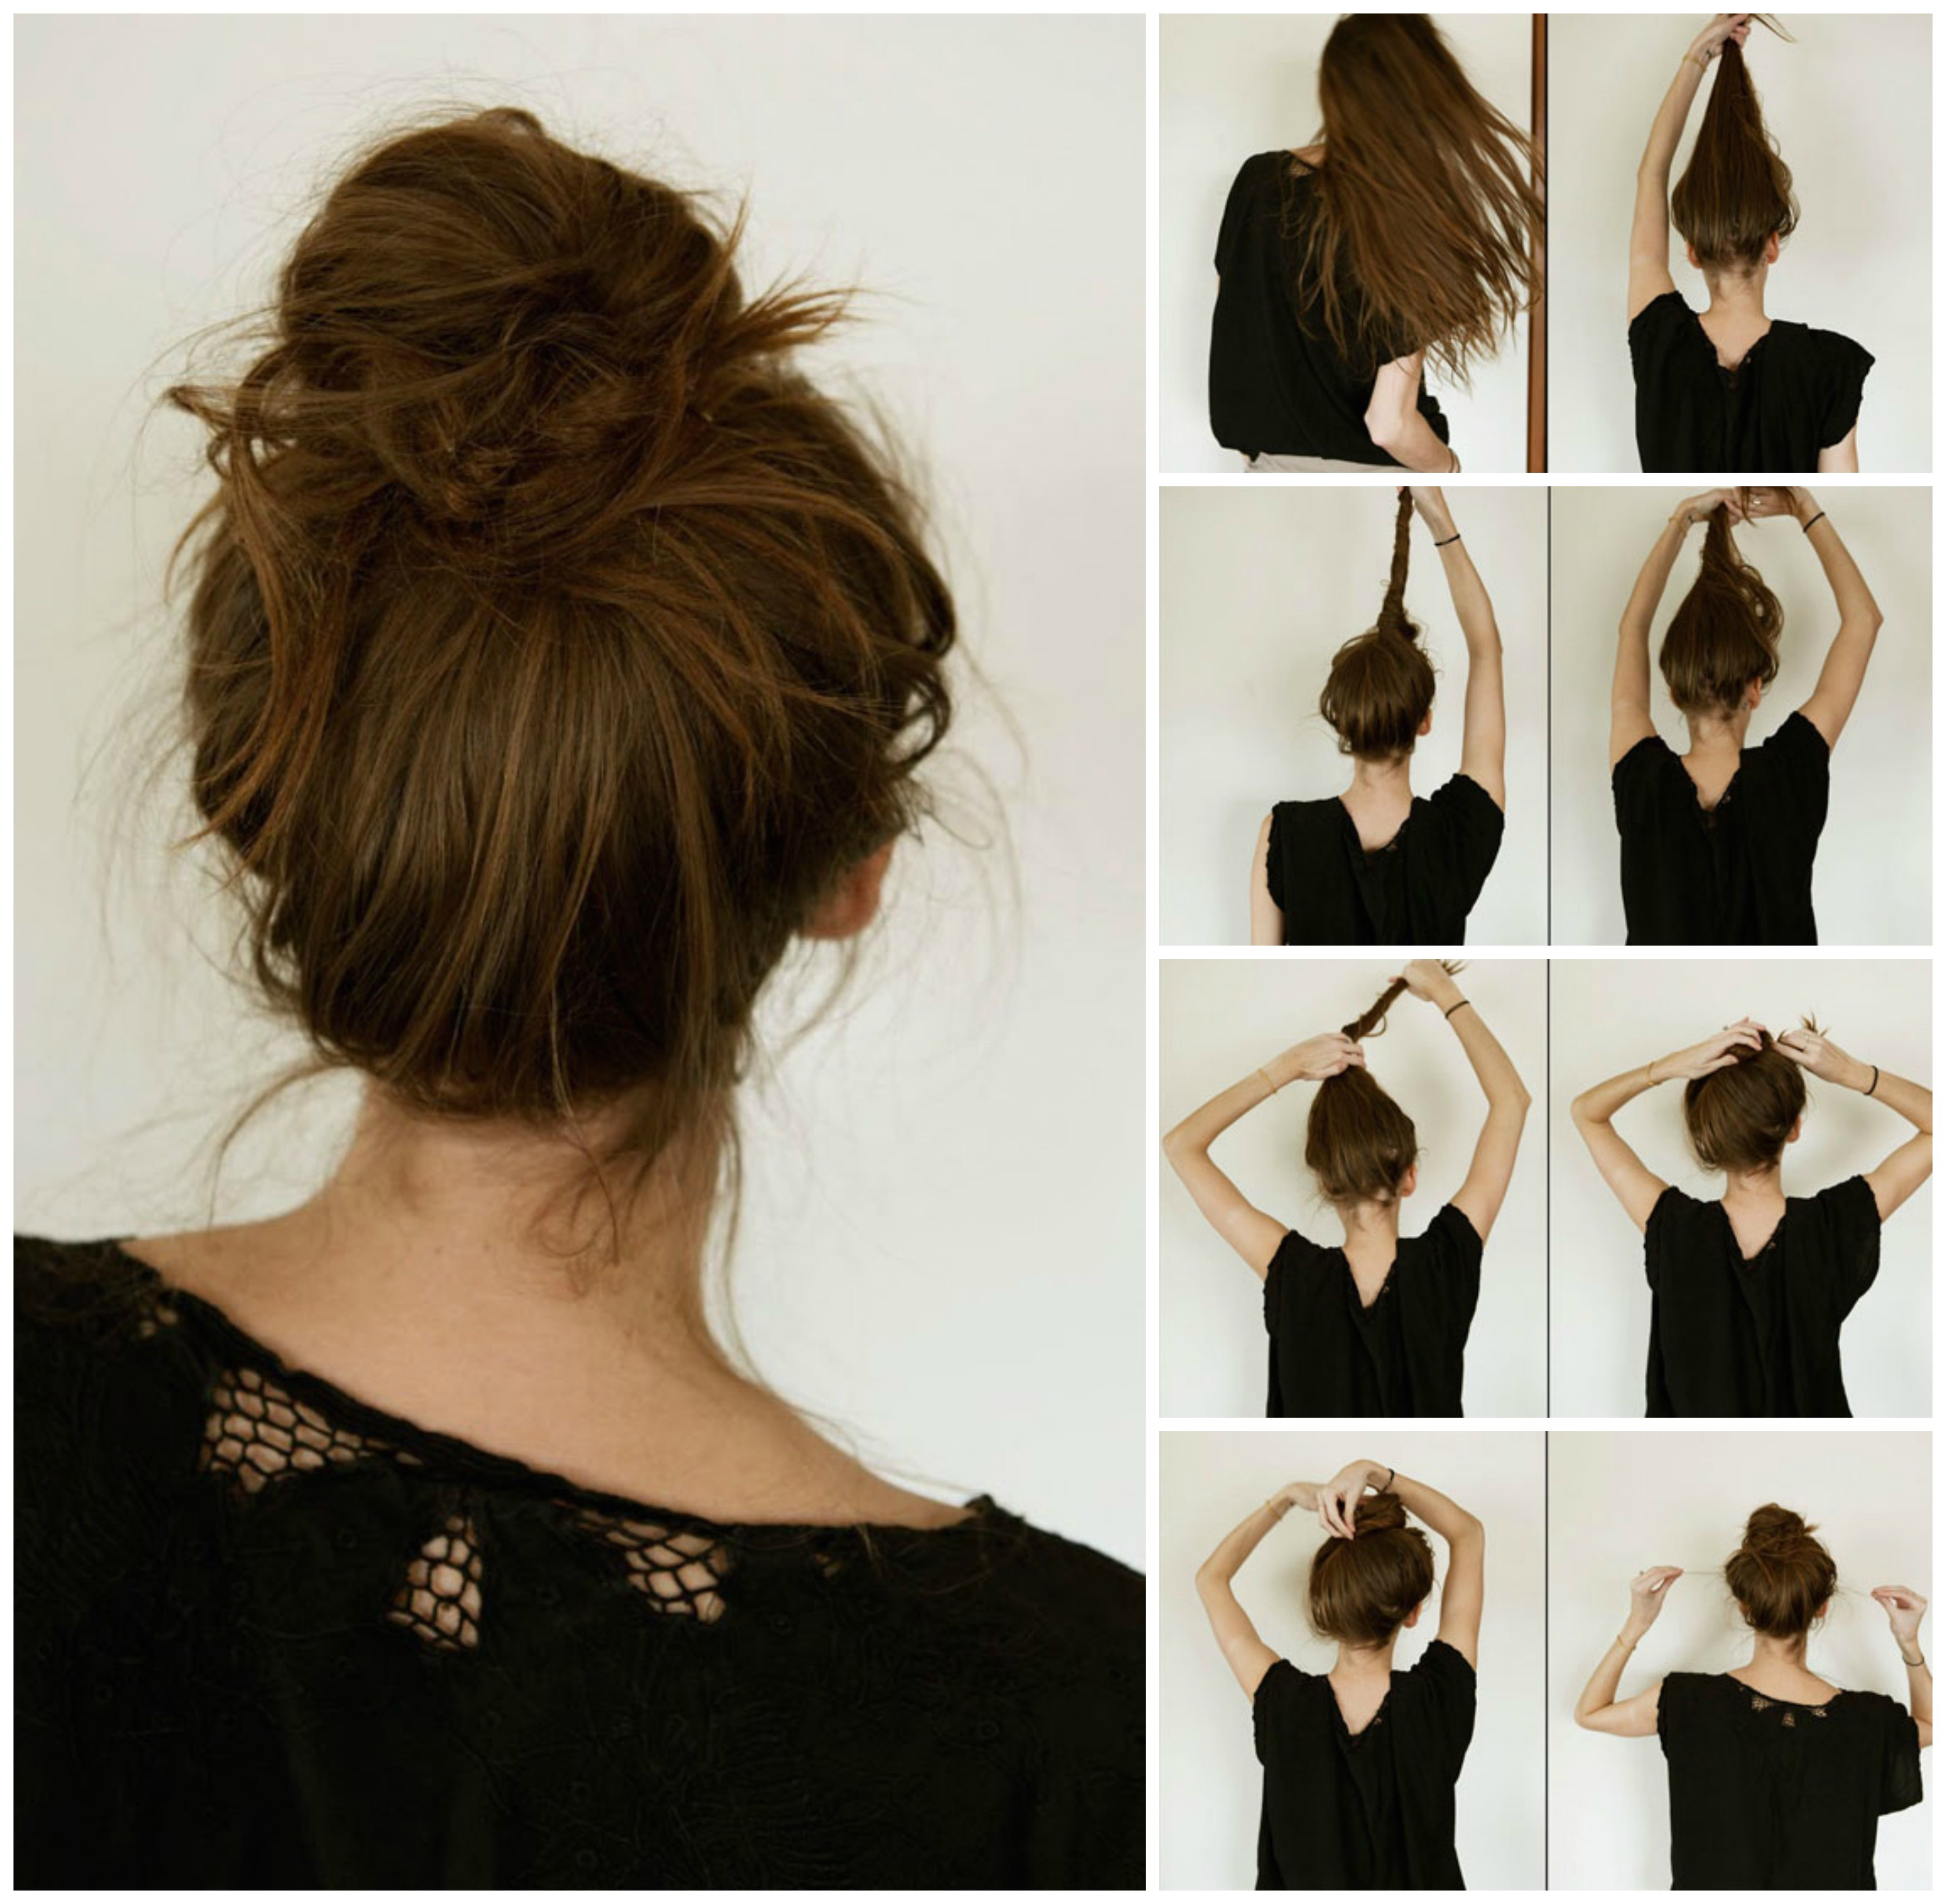 Steps to Make Easy Hairstyles Easy Step by Step Hairstyles Do by Own at Any Time